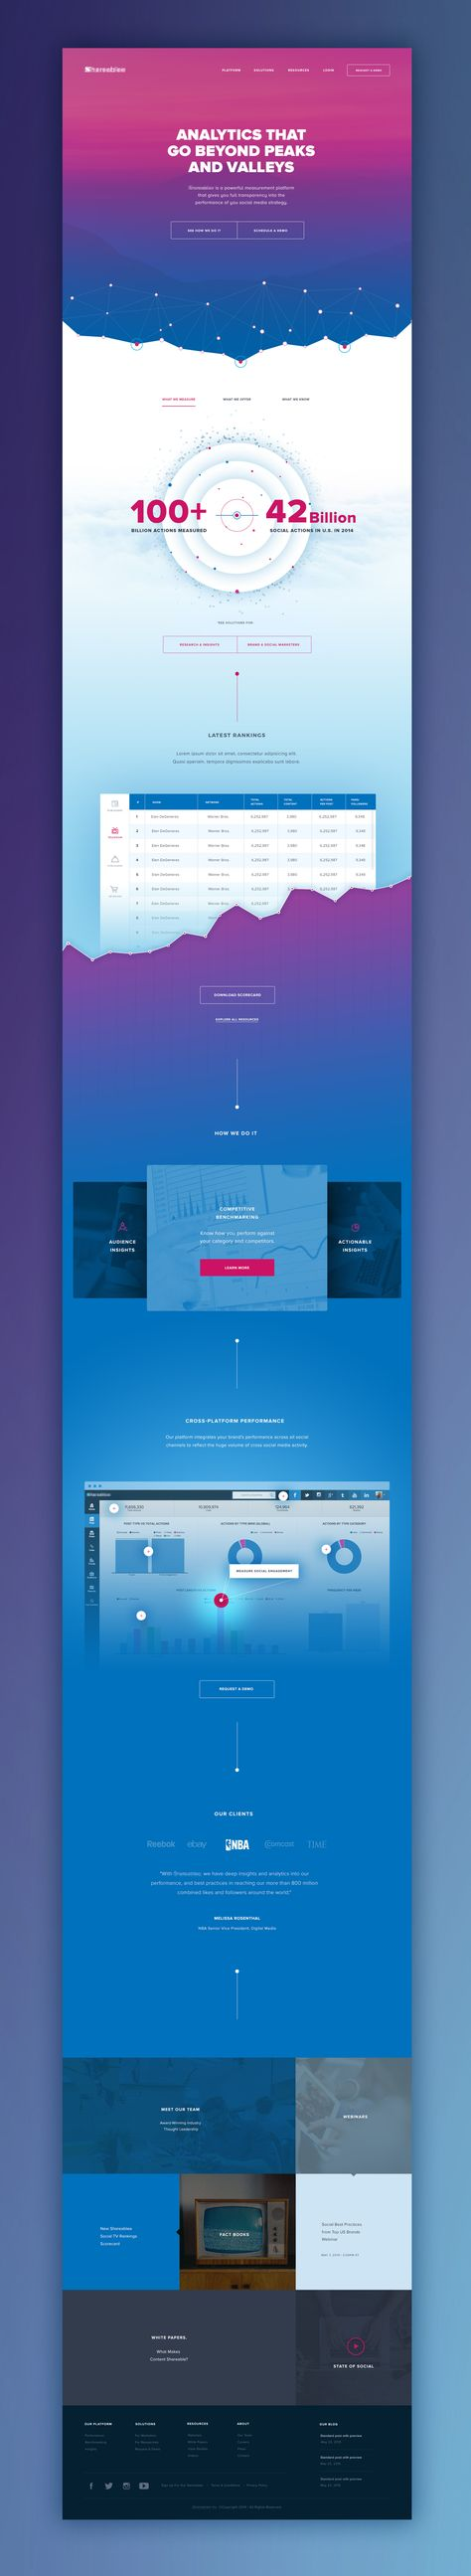 Home-Page.jpg by Michael Pons